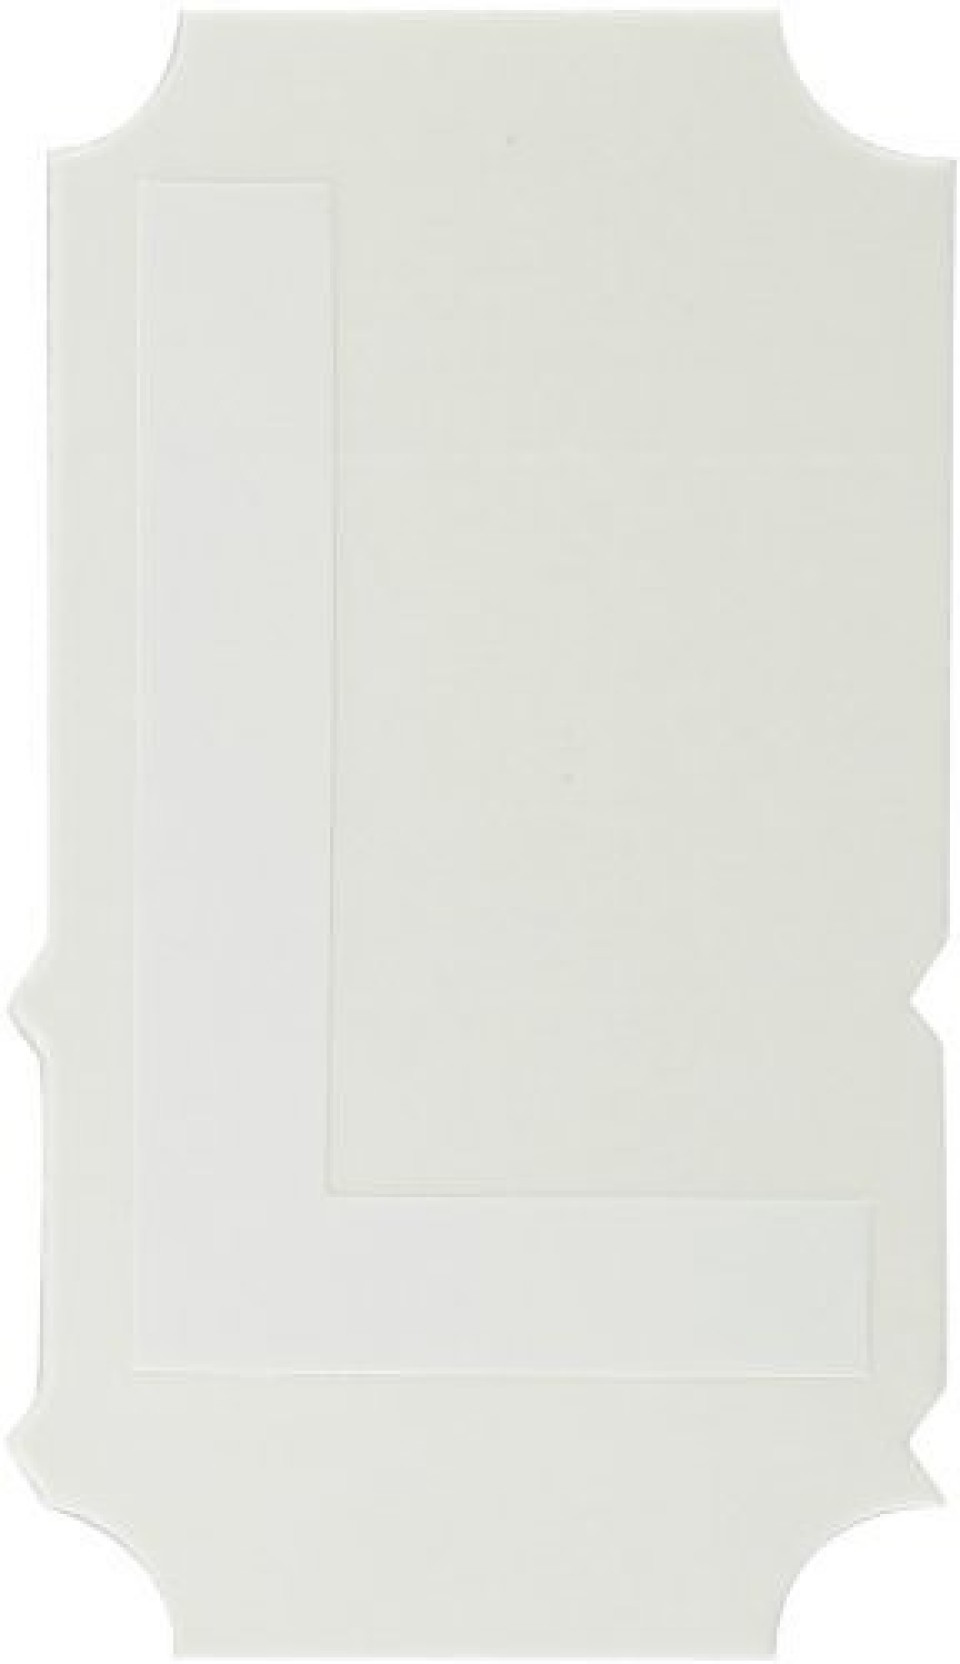 White 150 x 4 Brady B30C-4000-423 Polyester Continuous Tape